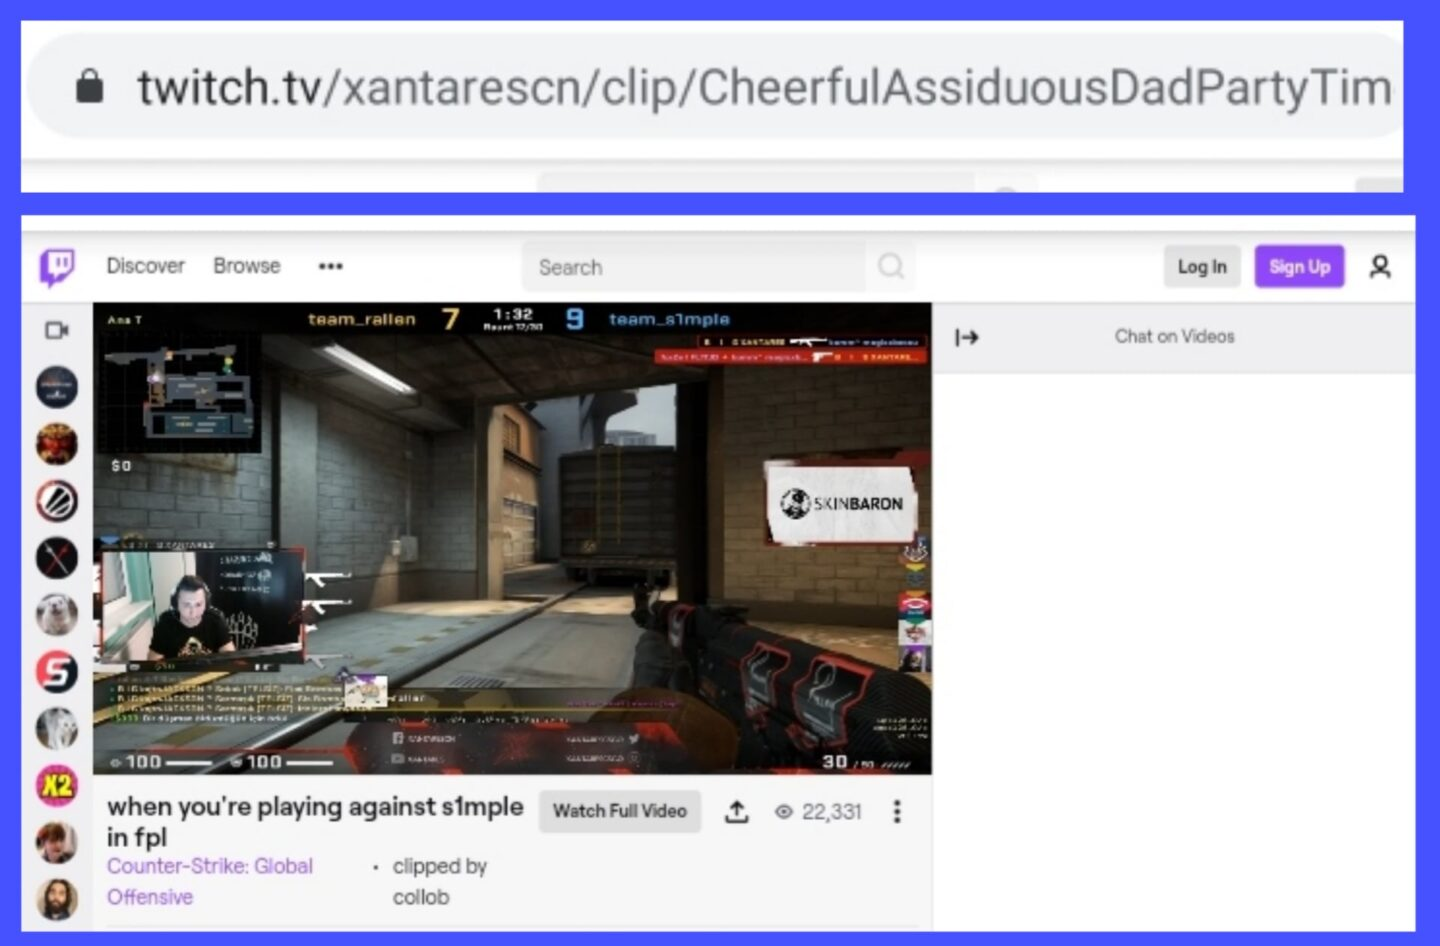 Copy Clip Link - Download Twitch Clips